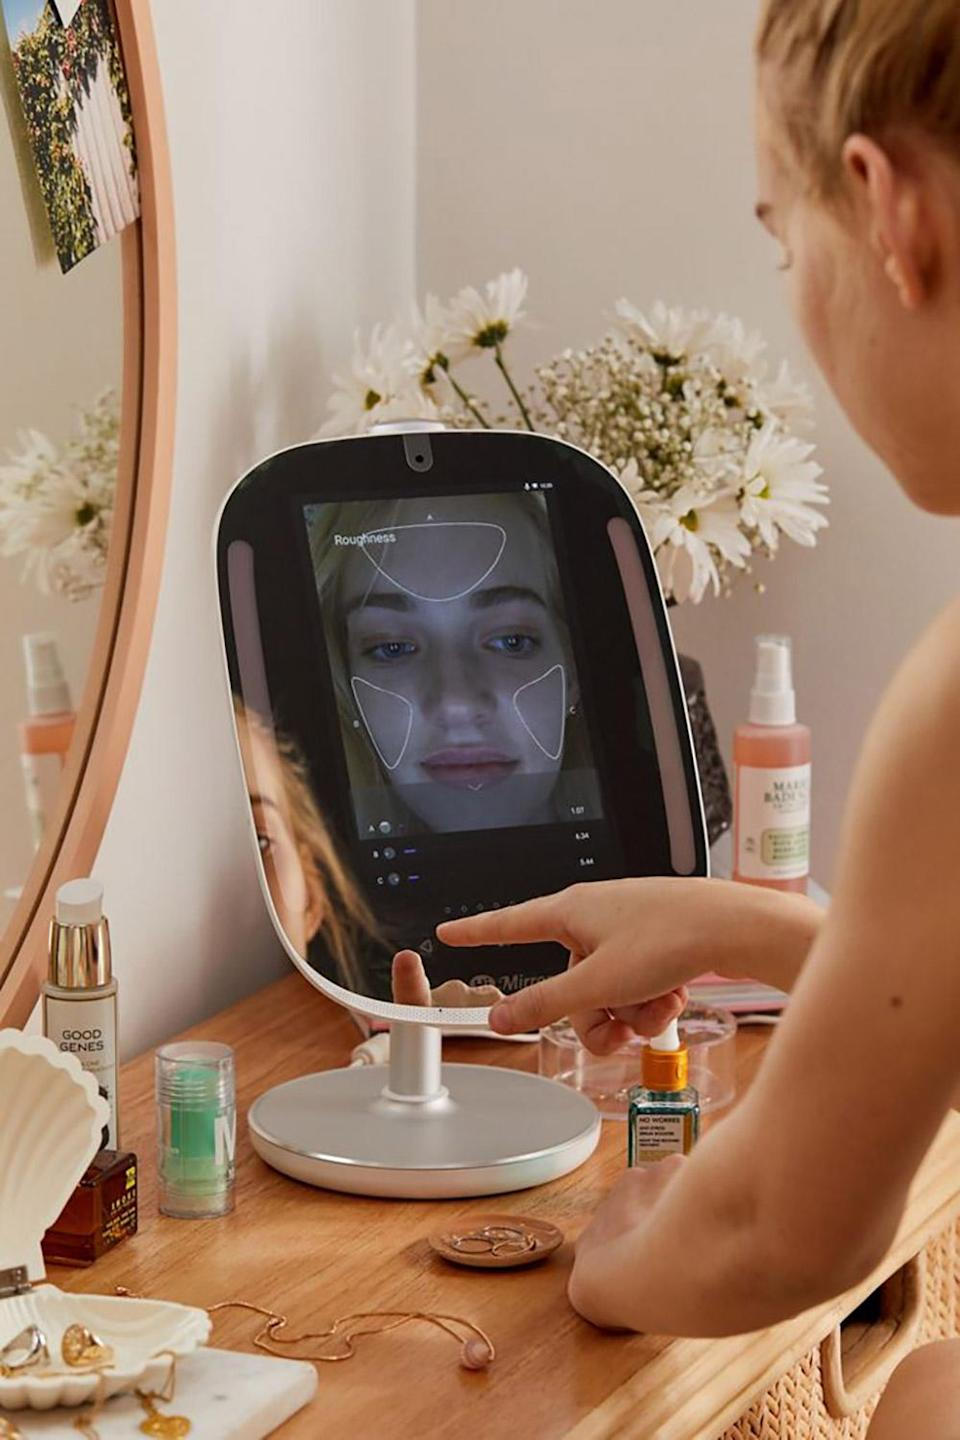 """<p>Bad Zoom lighting? Not in this house. This smart mirror provides the perfect light and magnification for makeup-application needs. Even cooler, it analyzes your complexion and reports back to you on any changes. </p> <p><strong>Buy It!</strong> HiMirror Smart Beauty Mirror, $199.00; <a href=""""https://click.linksynergy.com/deeplink?id=93xLBvPhAeE&mid=43176&murl=https%3A%2F%2Fwww.urbanoutfitters.com%2Fshop%2Fhimirror-smart-beauty-mirror%3Fcolor%3D007%26amp%3Btype%3DREGULAR%26amp%3Bsize%3DONE%2BSIZE%26amp%3Bquantity%3D1&u1=PEO2020HolidayGiftGuideGiftsEveryTechLoverNeedsThisSeasonawurzburTecGal12384134202011I"""" rel=""""nofollow noopener"""" target=""""_blank"""" data-ylk=""""slk:urbanoutfitters.com"""" class=""""link rapid-noclick-resp"""">urbanoutfitters.com</a></p>"""